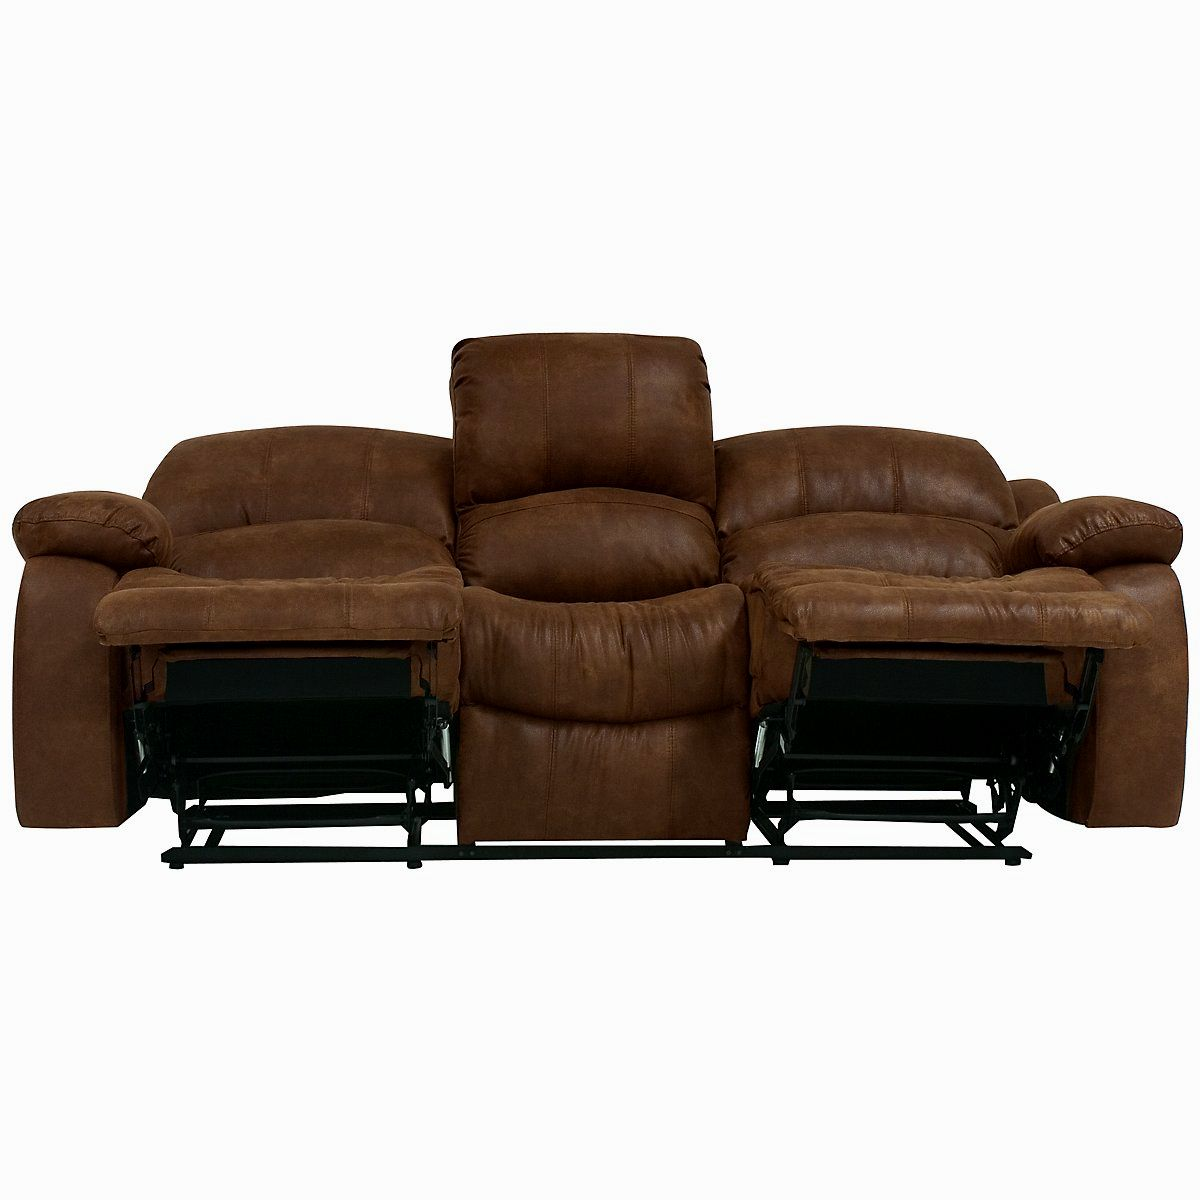 Modern Leather Sofa Recliner | Unique Leather Sofa Recliners 7 ...